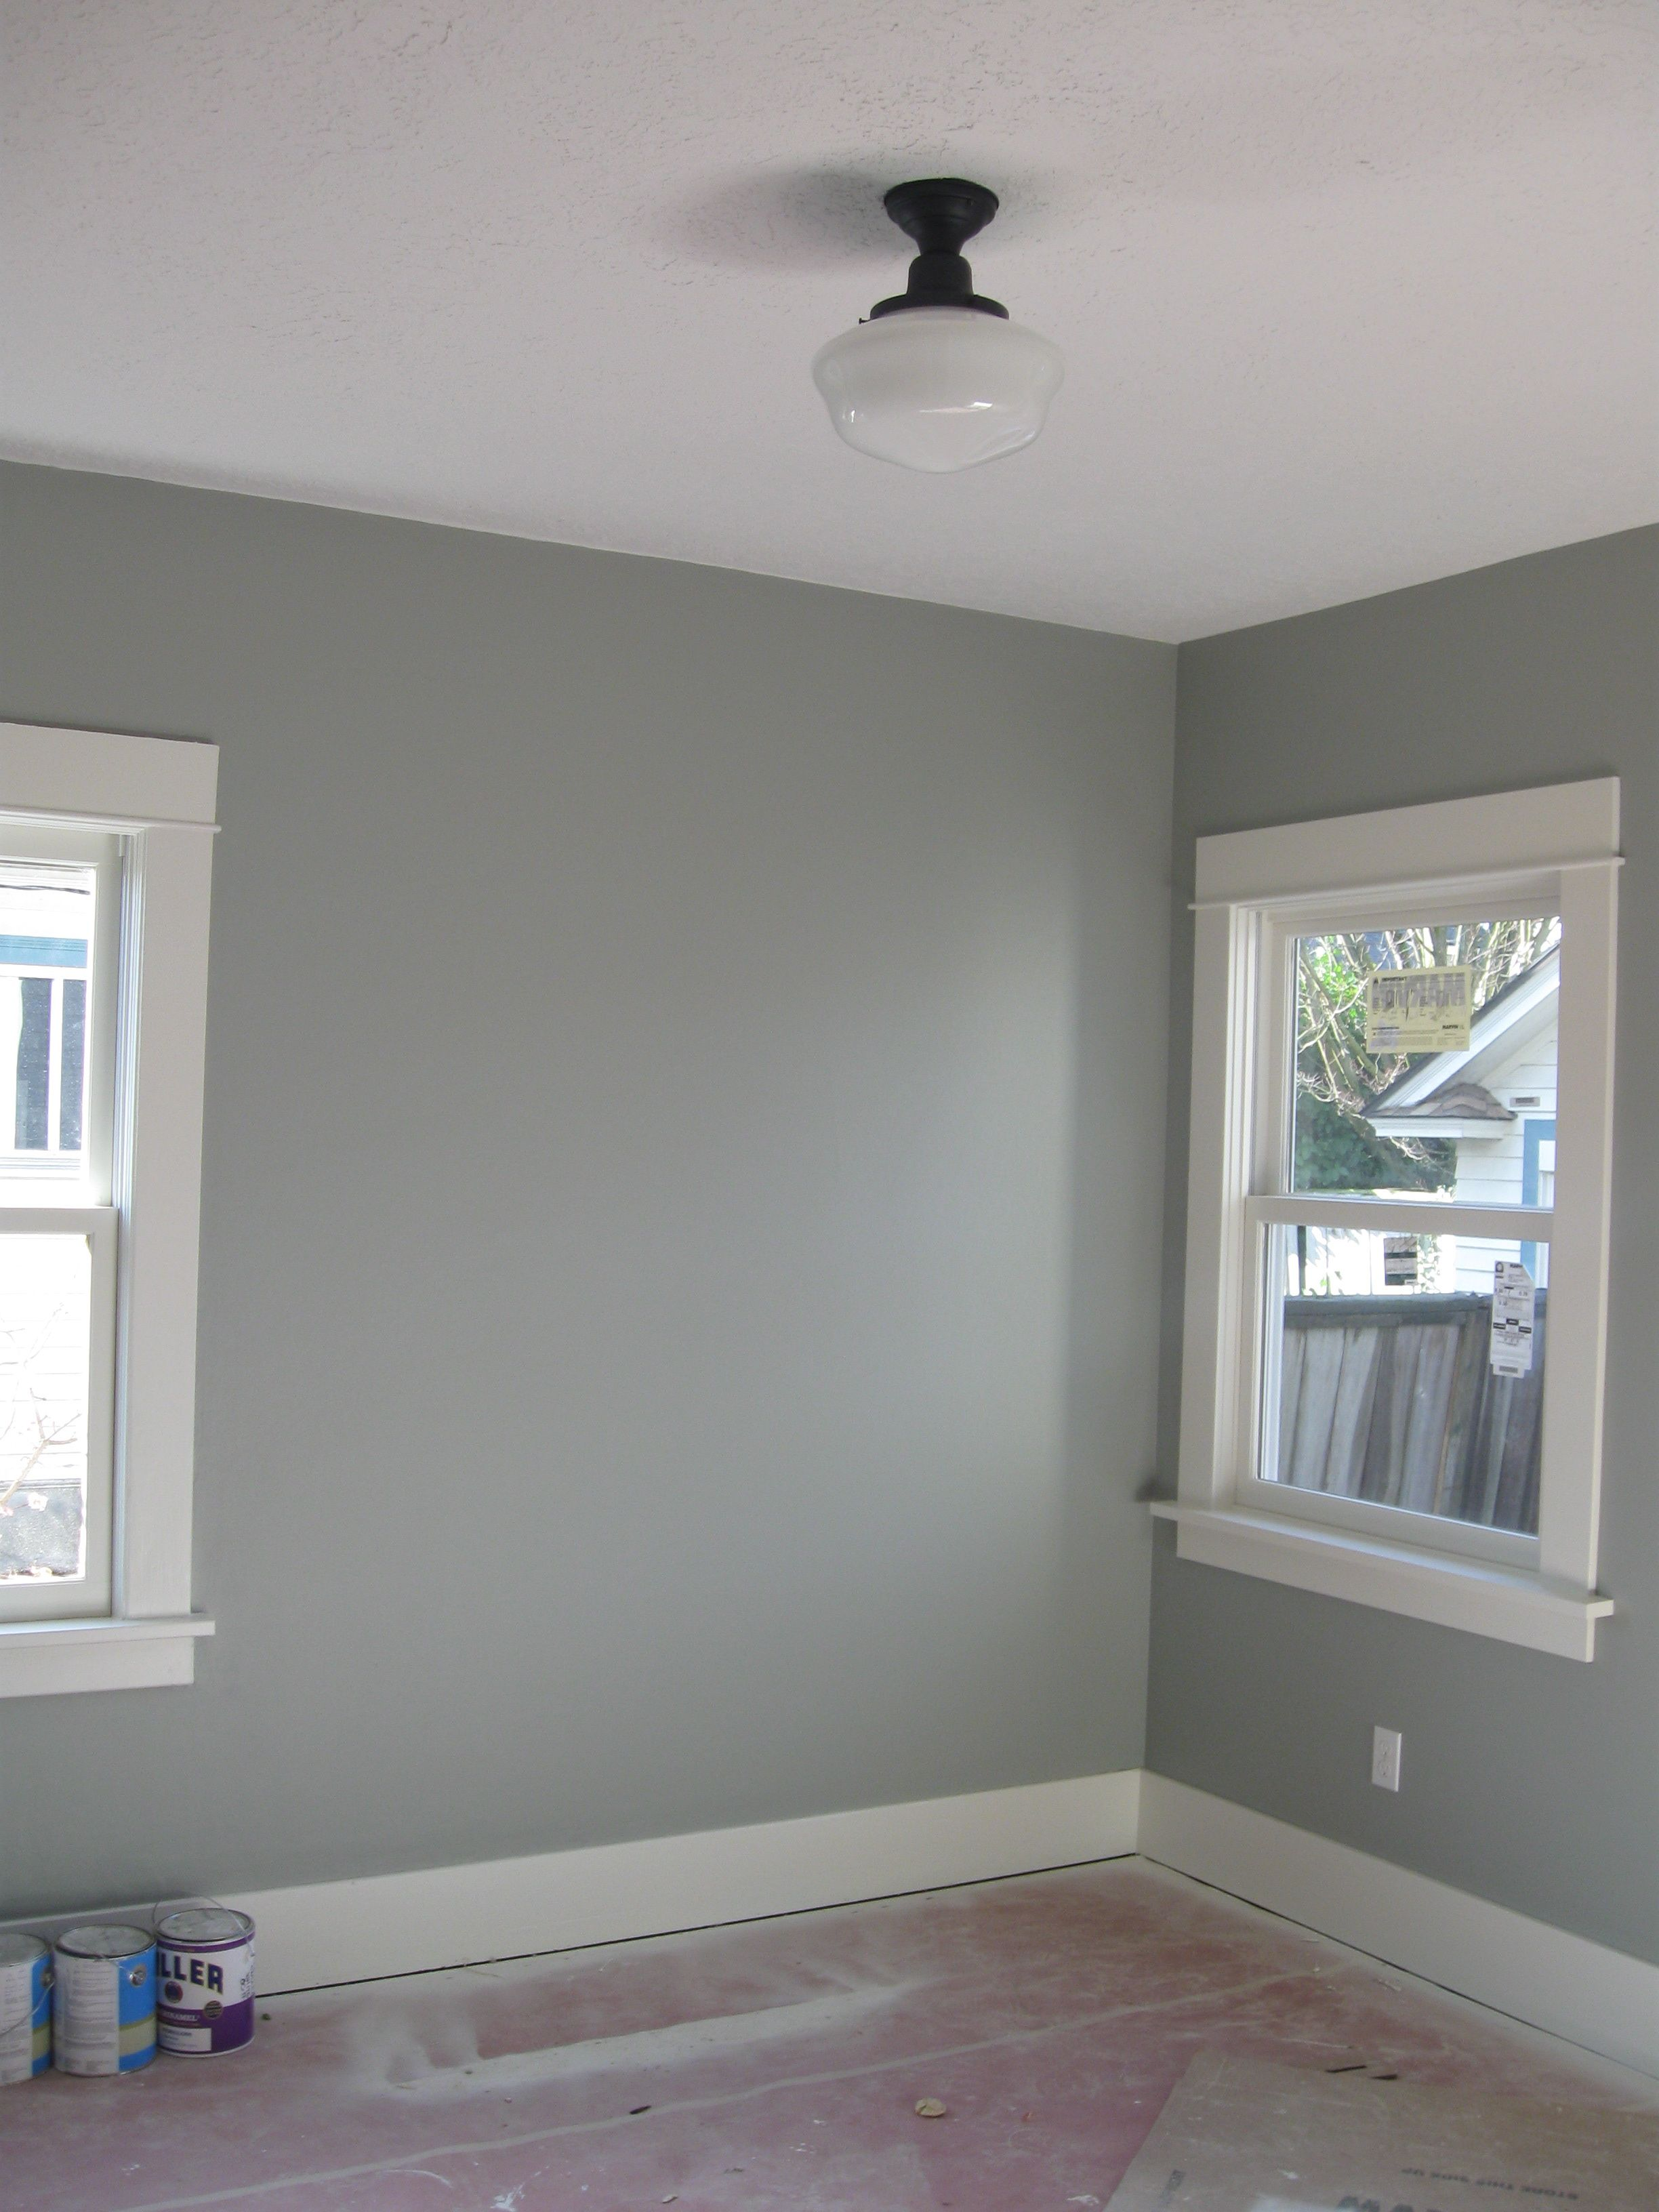 Paint Color Is Quot Veranda Green Quot From Benjamin Moore Turned